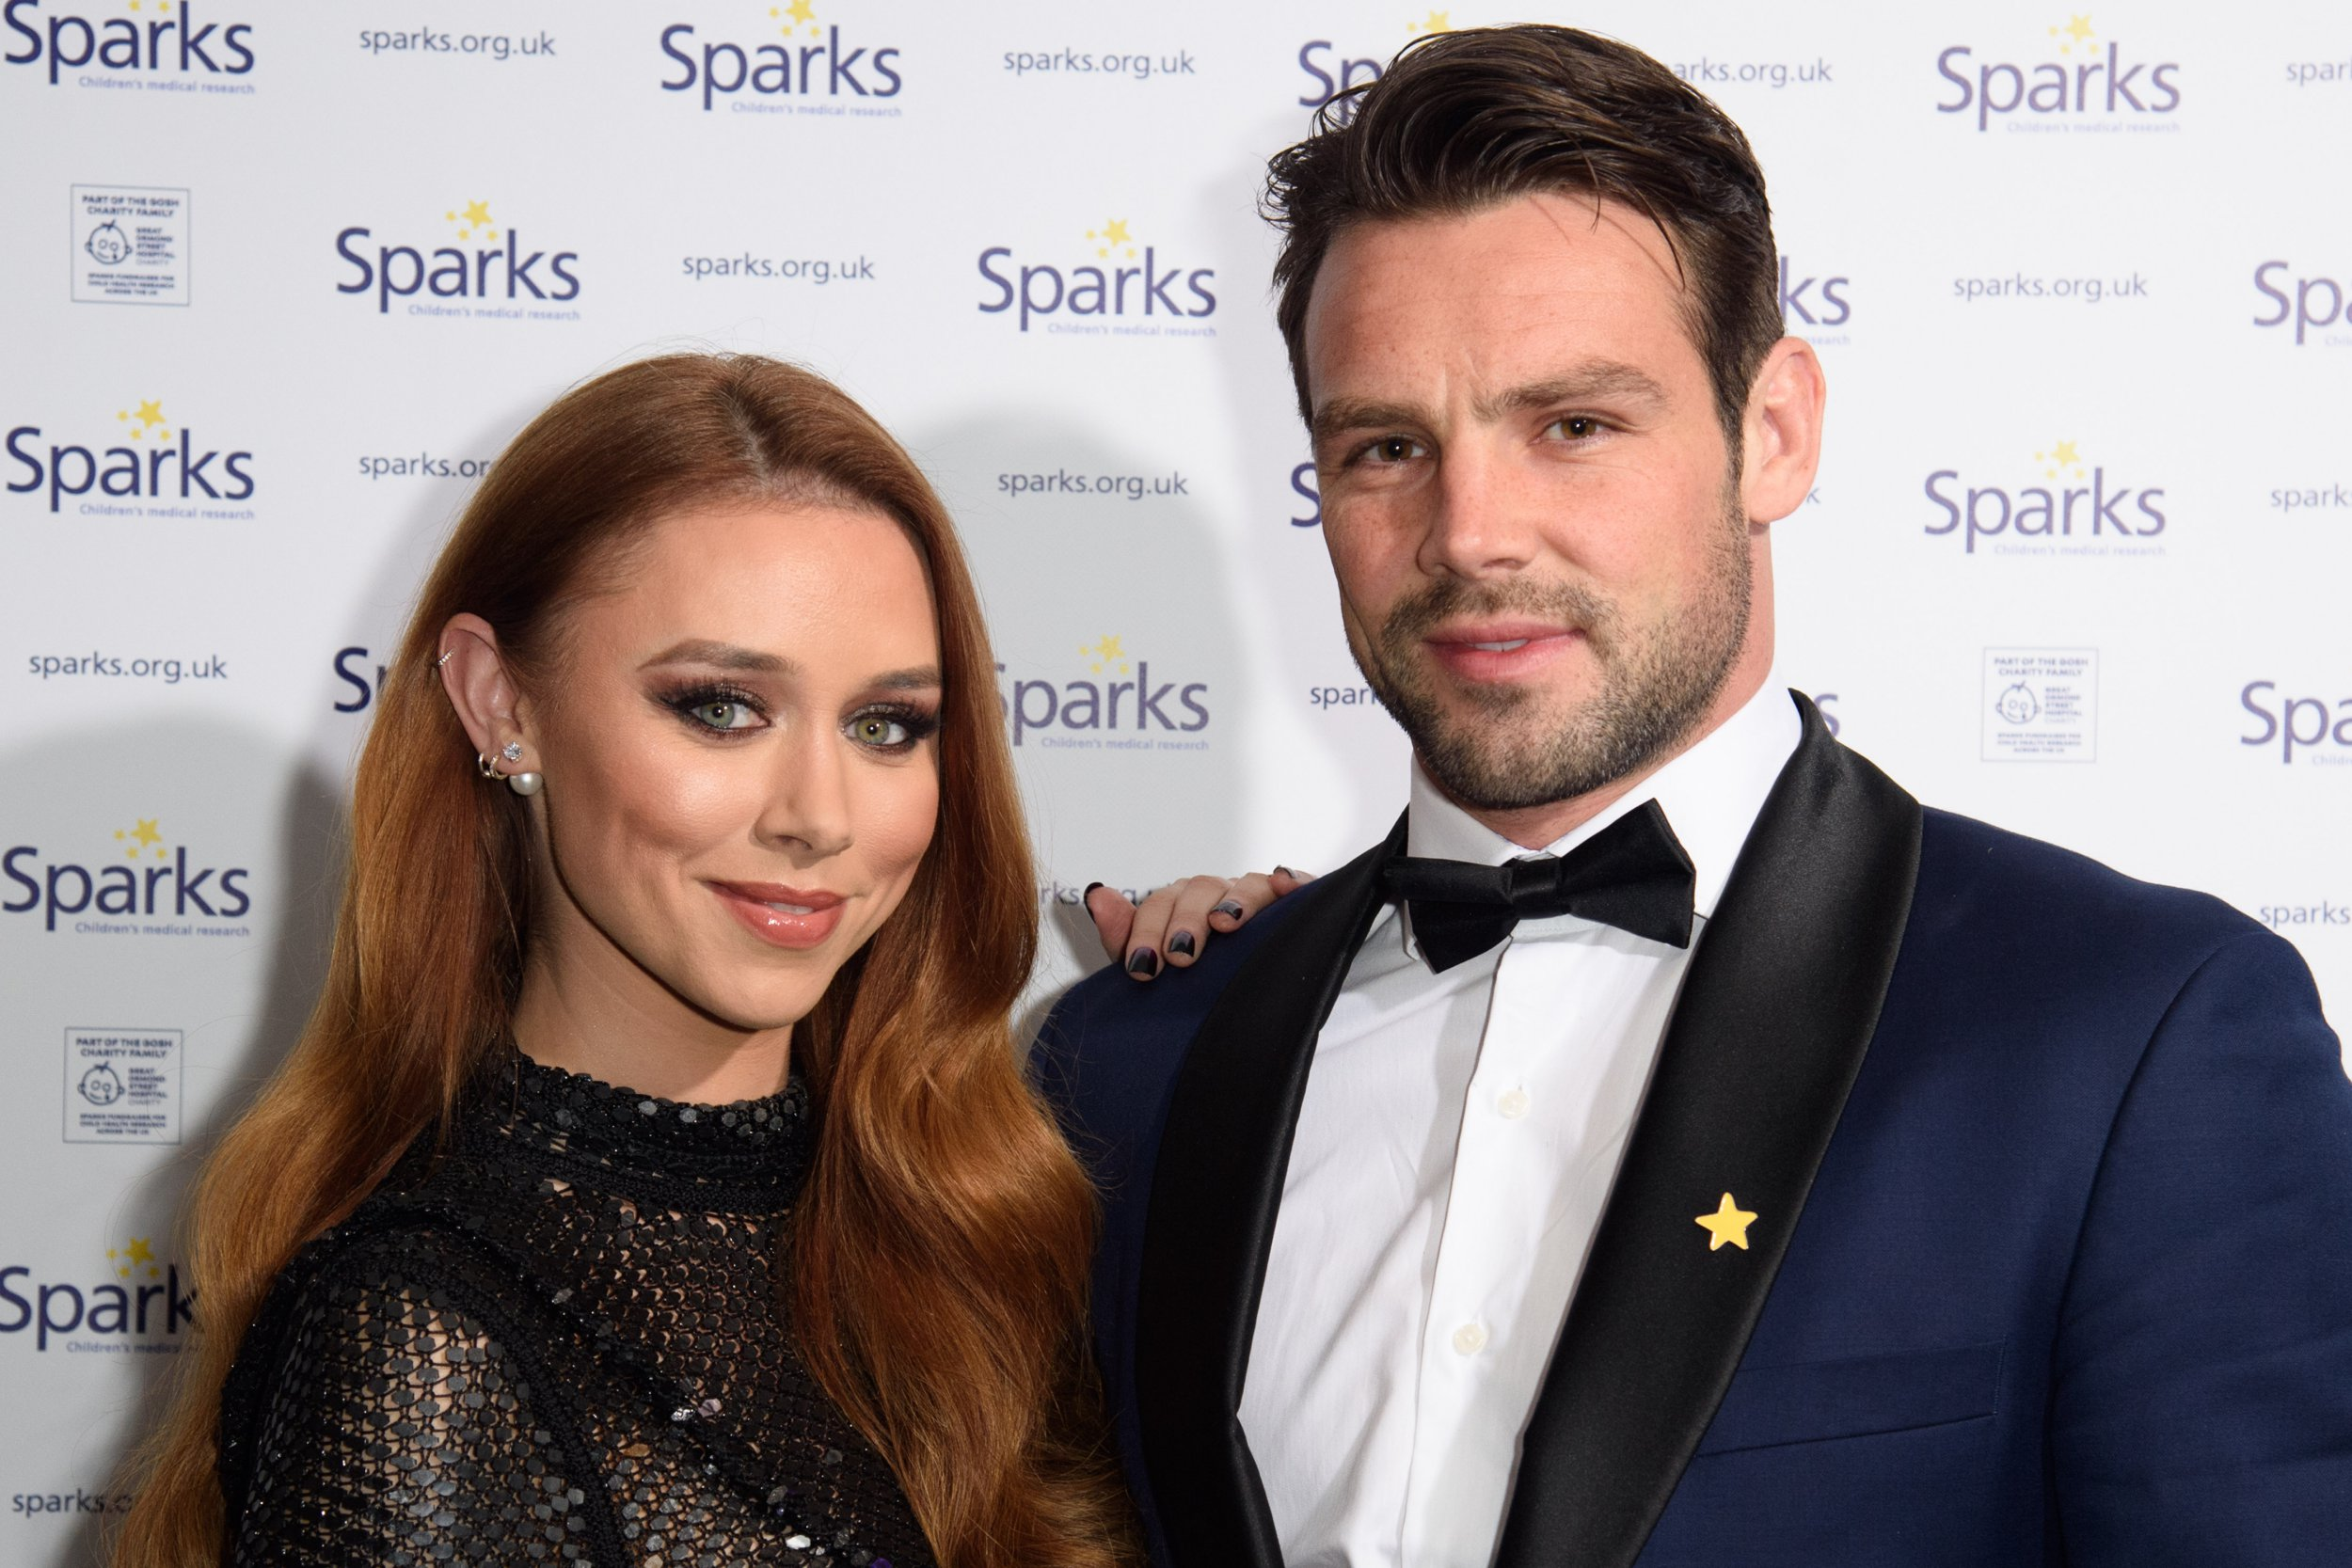 Una Healy breaks silence over Ben Foden split as she admits her life 'turned upside down'